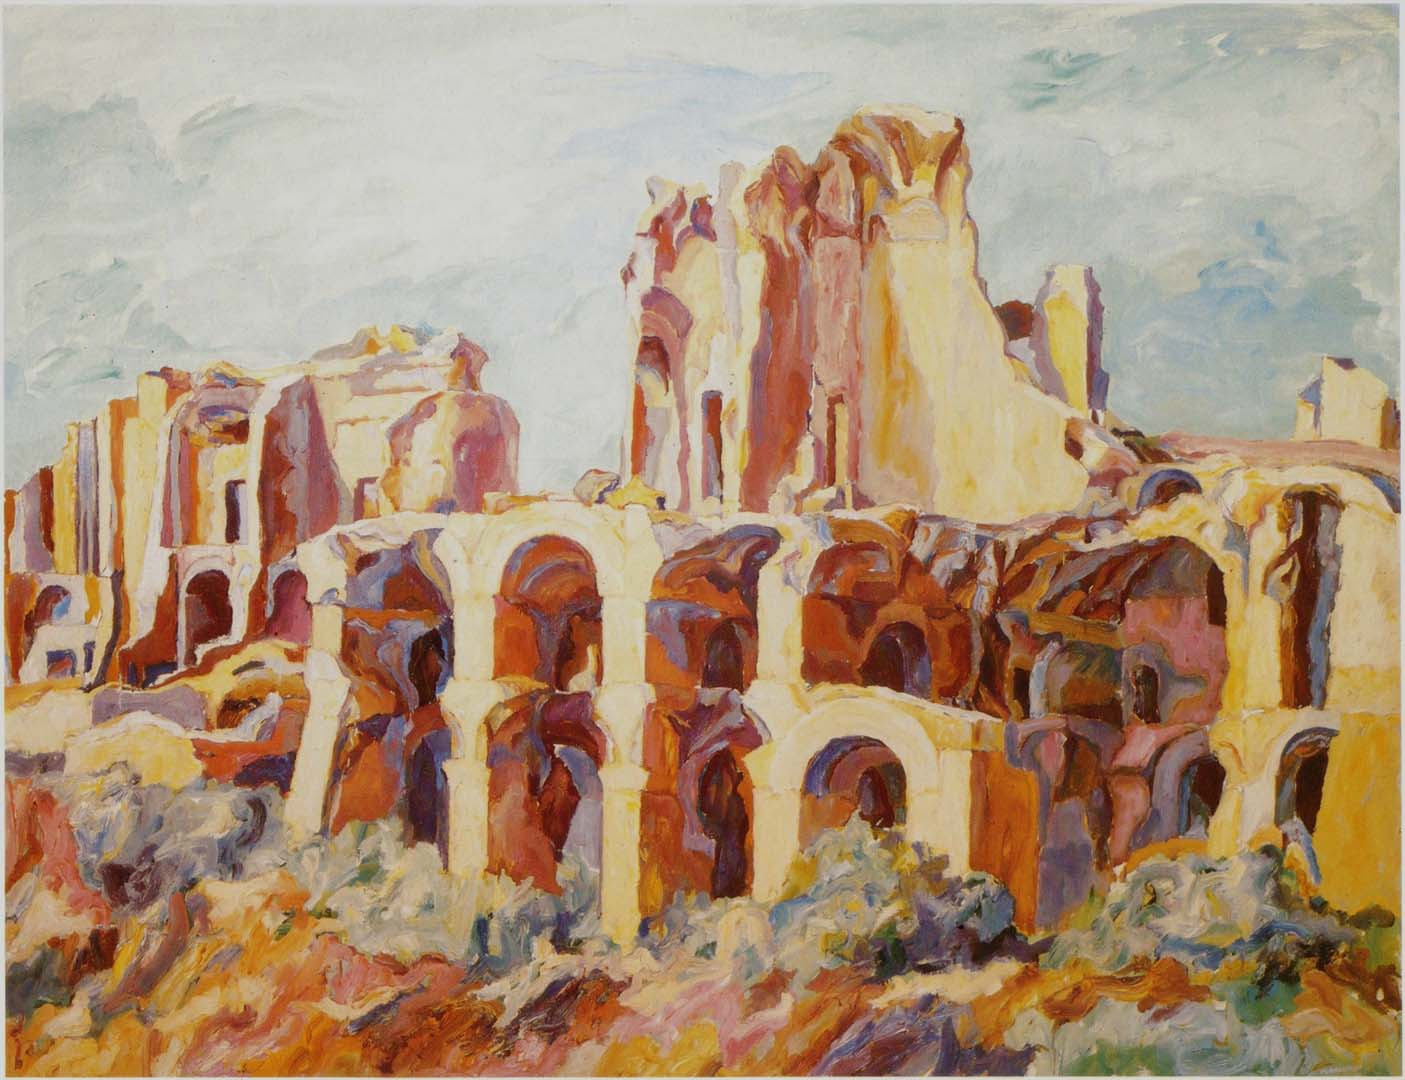 1961 Palatine Oil on Canvas 54 x 69